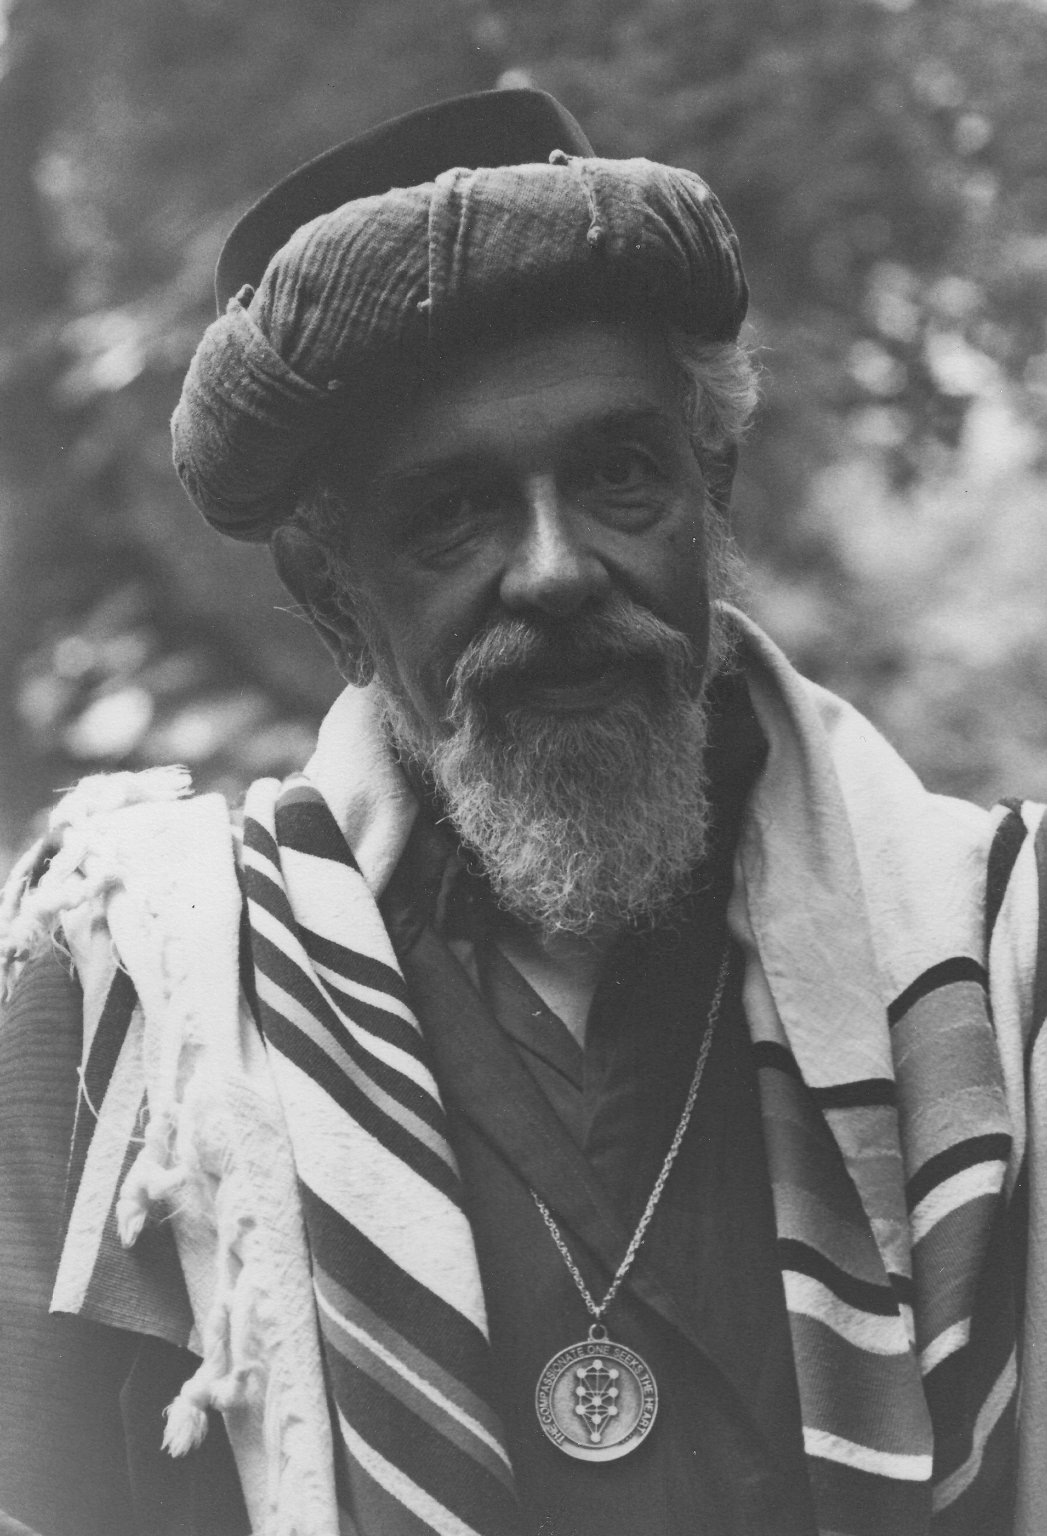 Rabbi Zalman Schachter-Shalomi in sheikh's turban, robe, tallit, and B'nai Or medallion, 1980s.